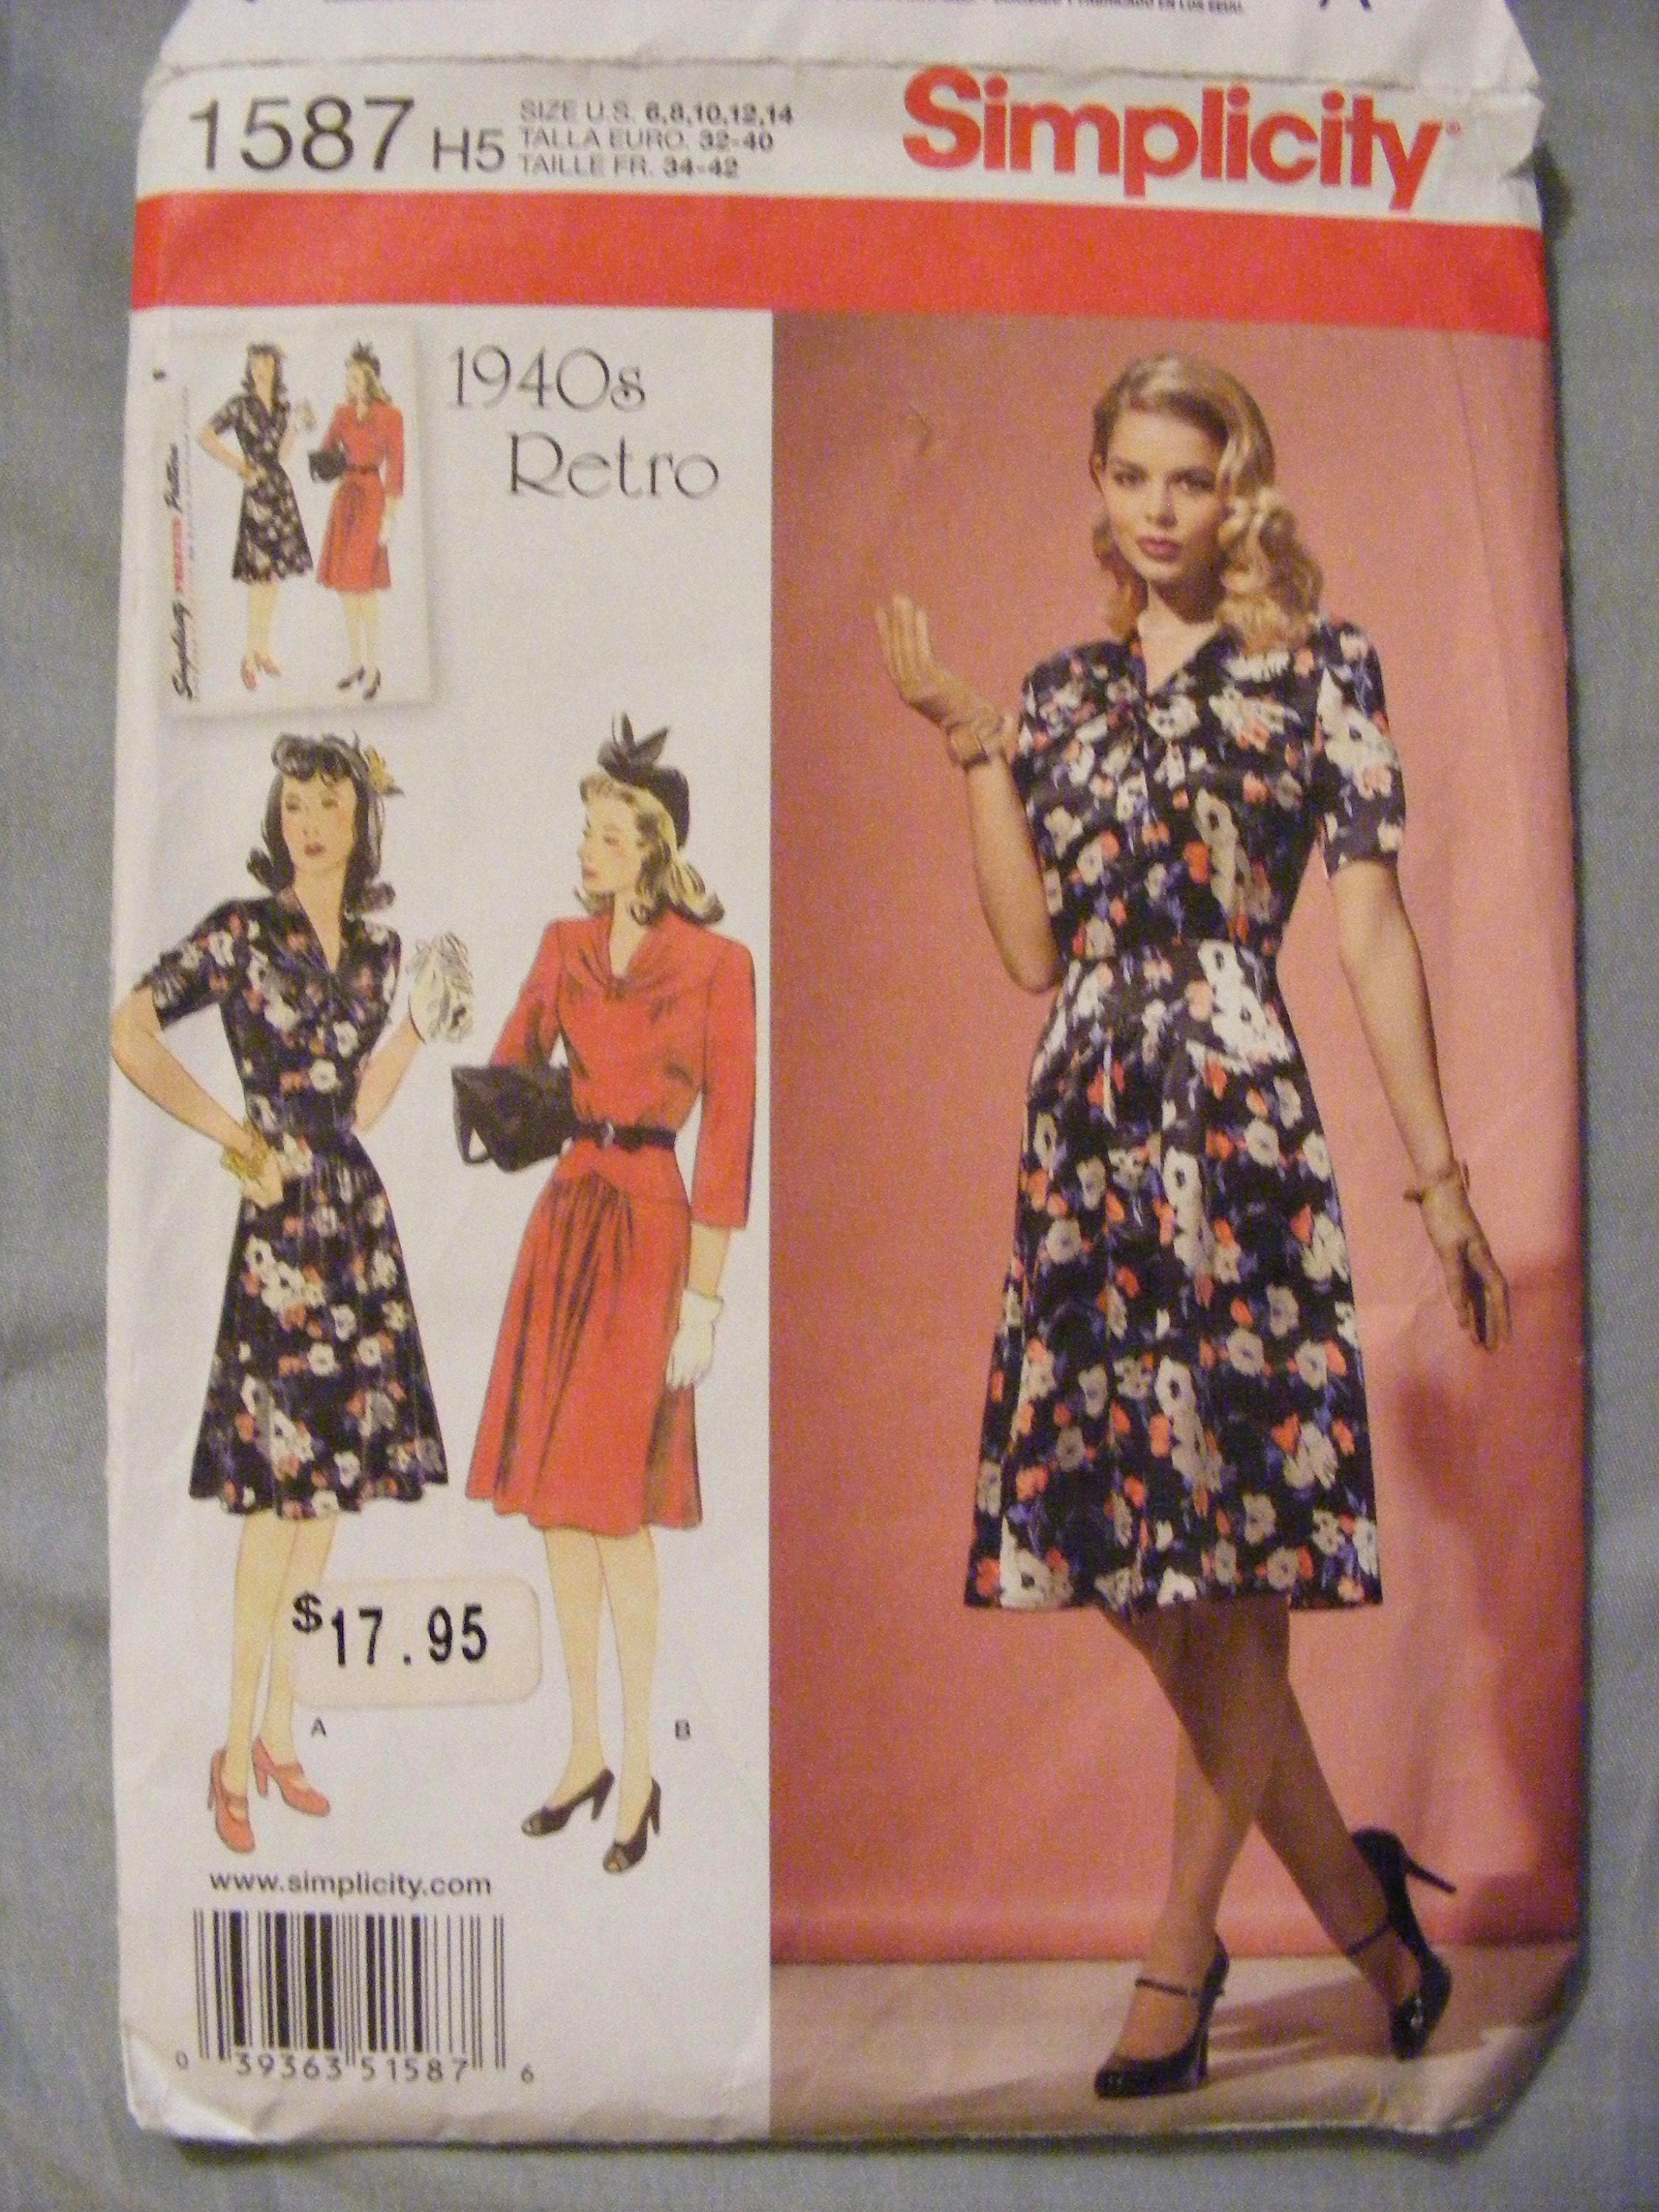 b580bdca911 1940 s Retro Reprint Simplicity Sewing Pattern 1587 Misses  Dress Size 6 8  10 12 14 from WisconsinFound on Etsy Studio